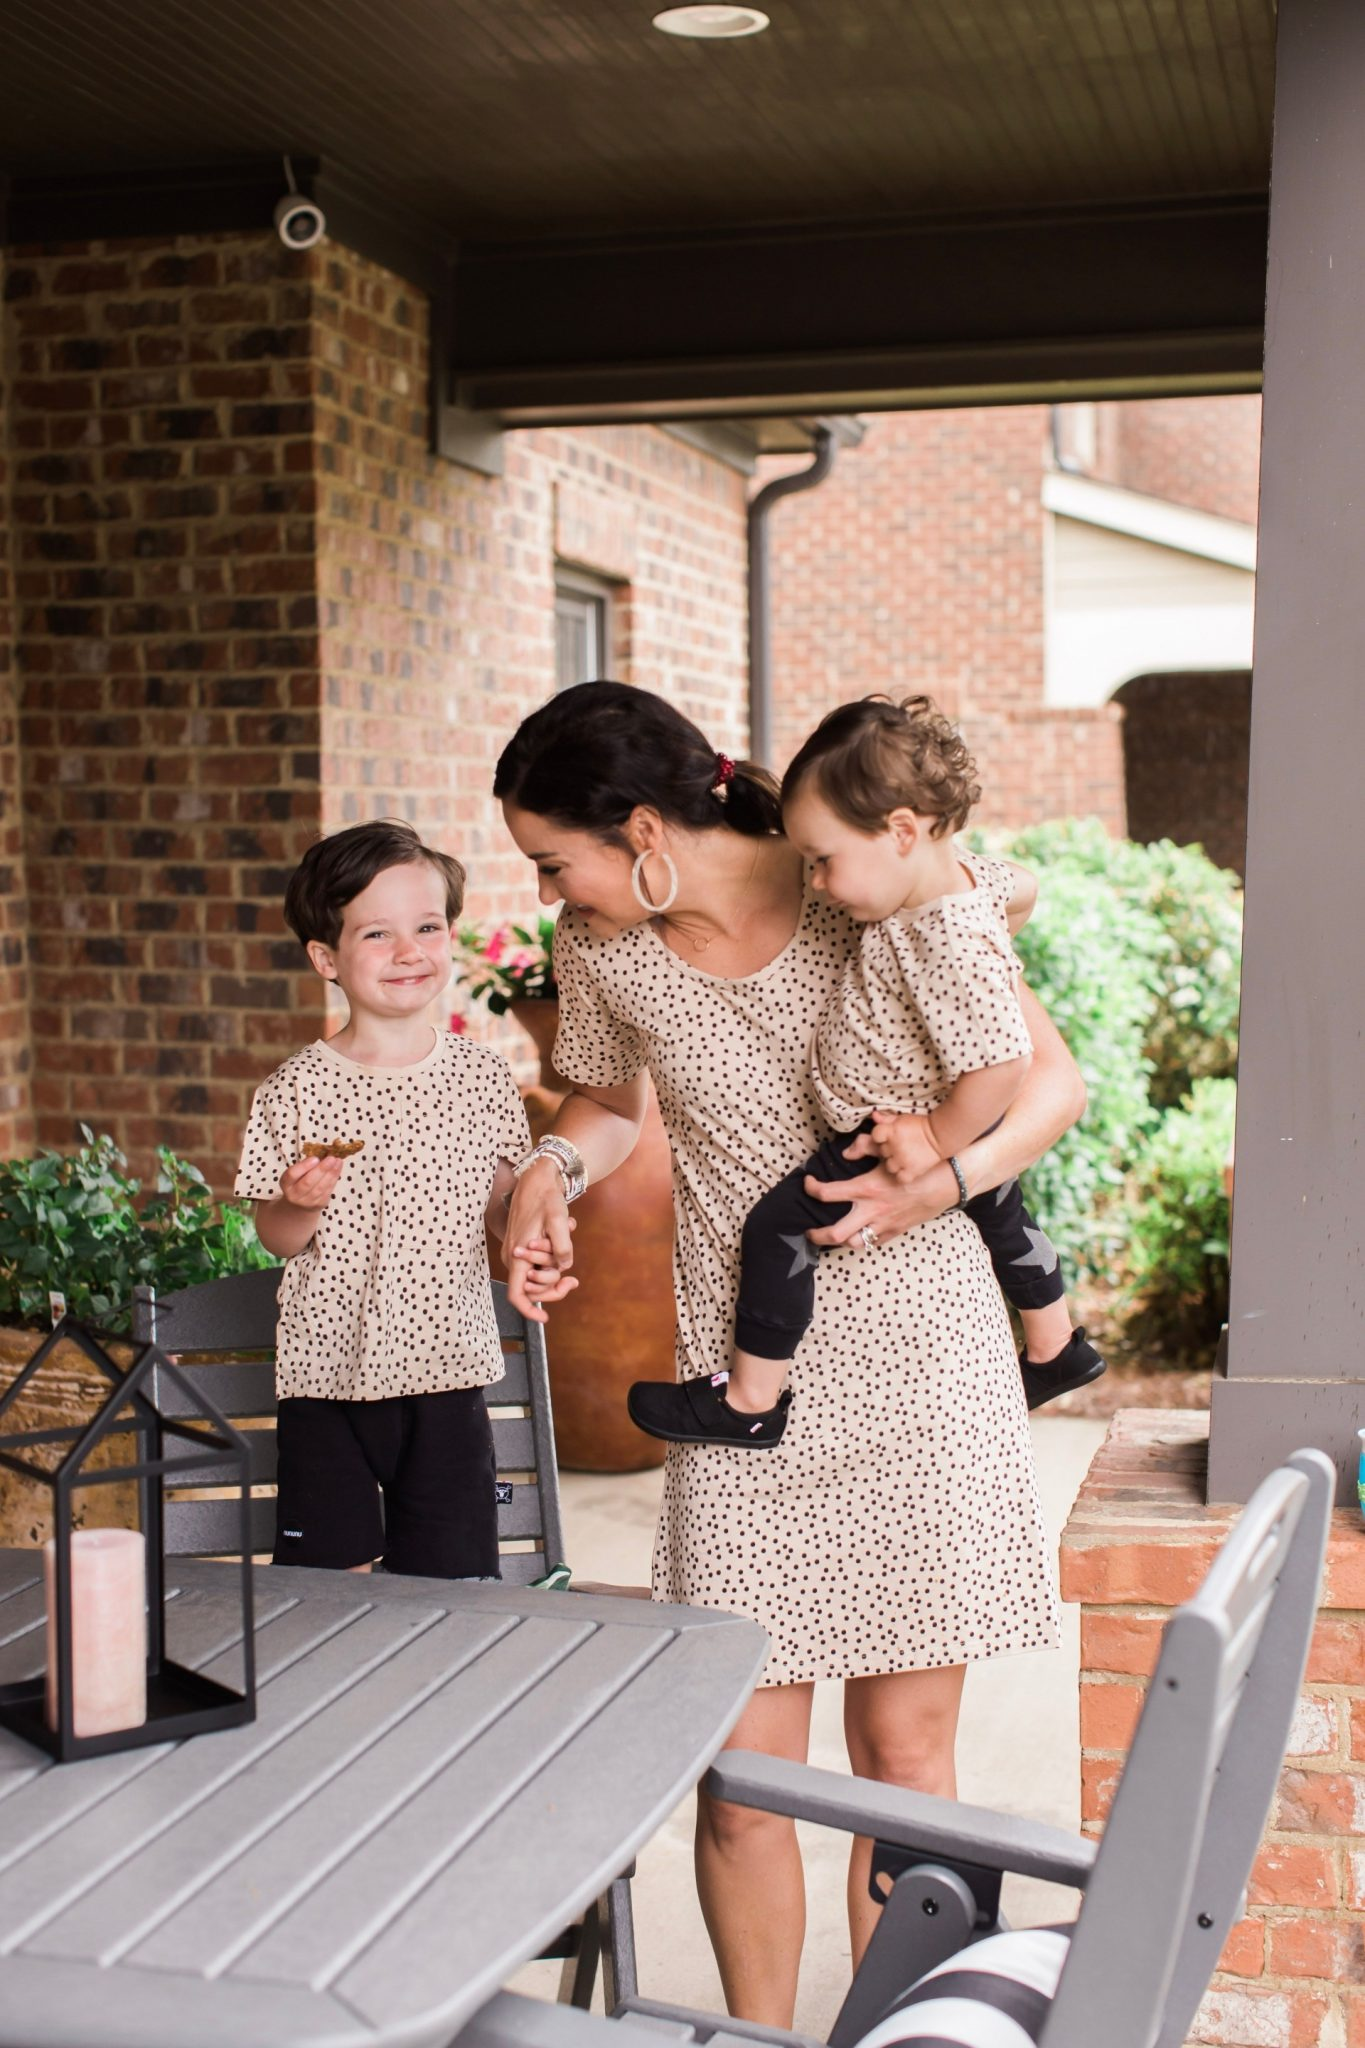 How To Manage Two Kids by Alabama Mommy + Lifestyle blogger, Heather Brown // My Life Well Loved